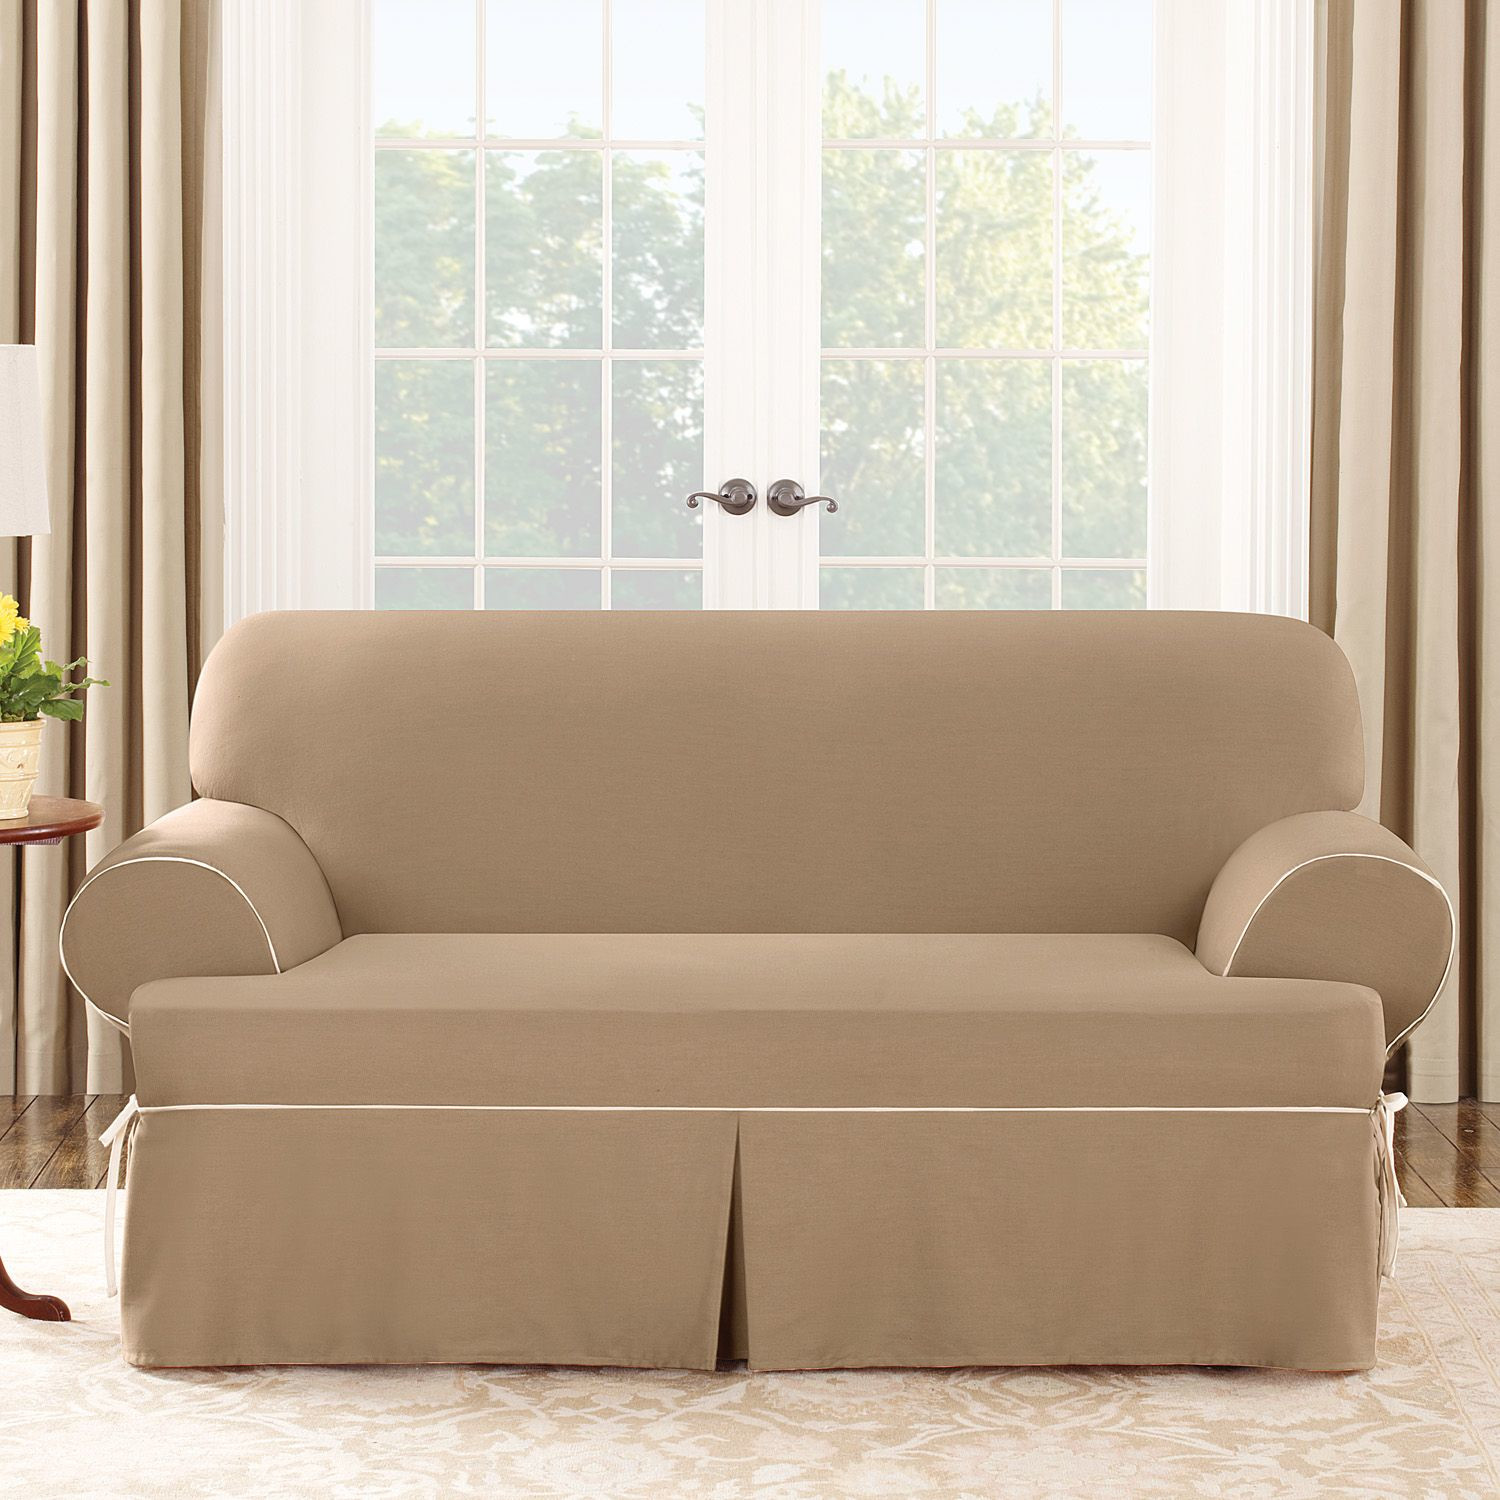 Chair Slipcovers T-cushion | Slipcovers Sofa | T Cushion Sofa Slipcover